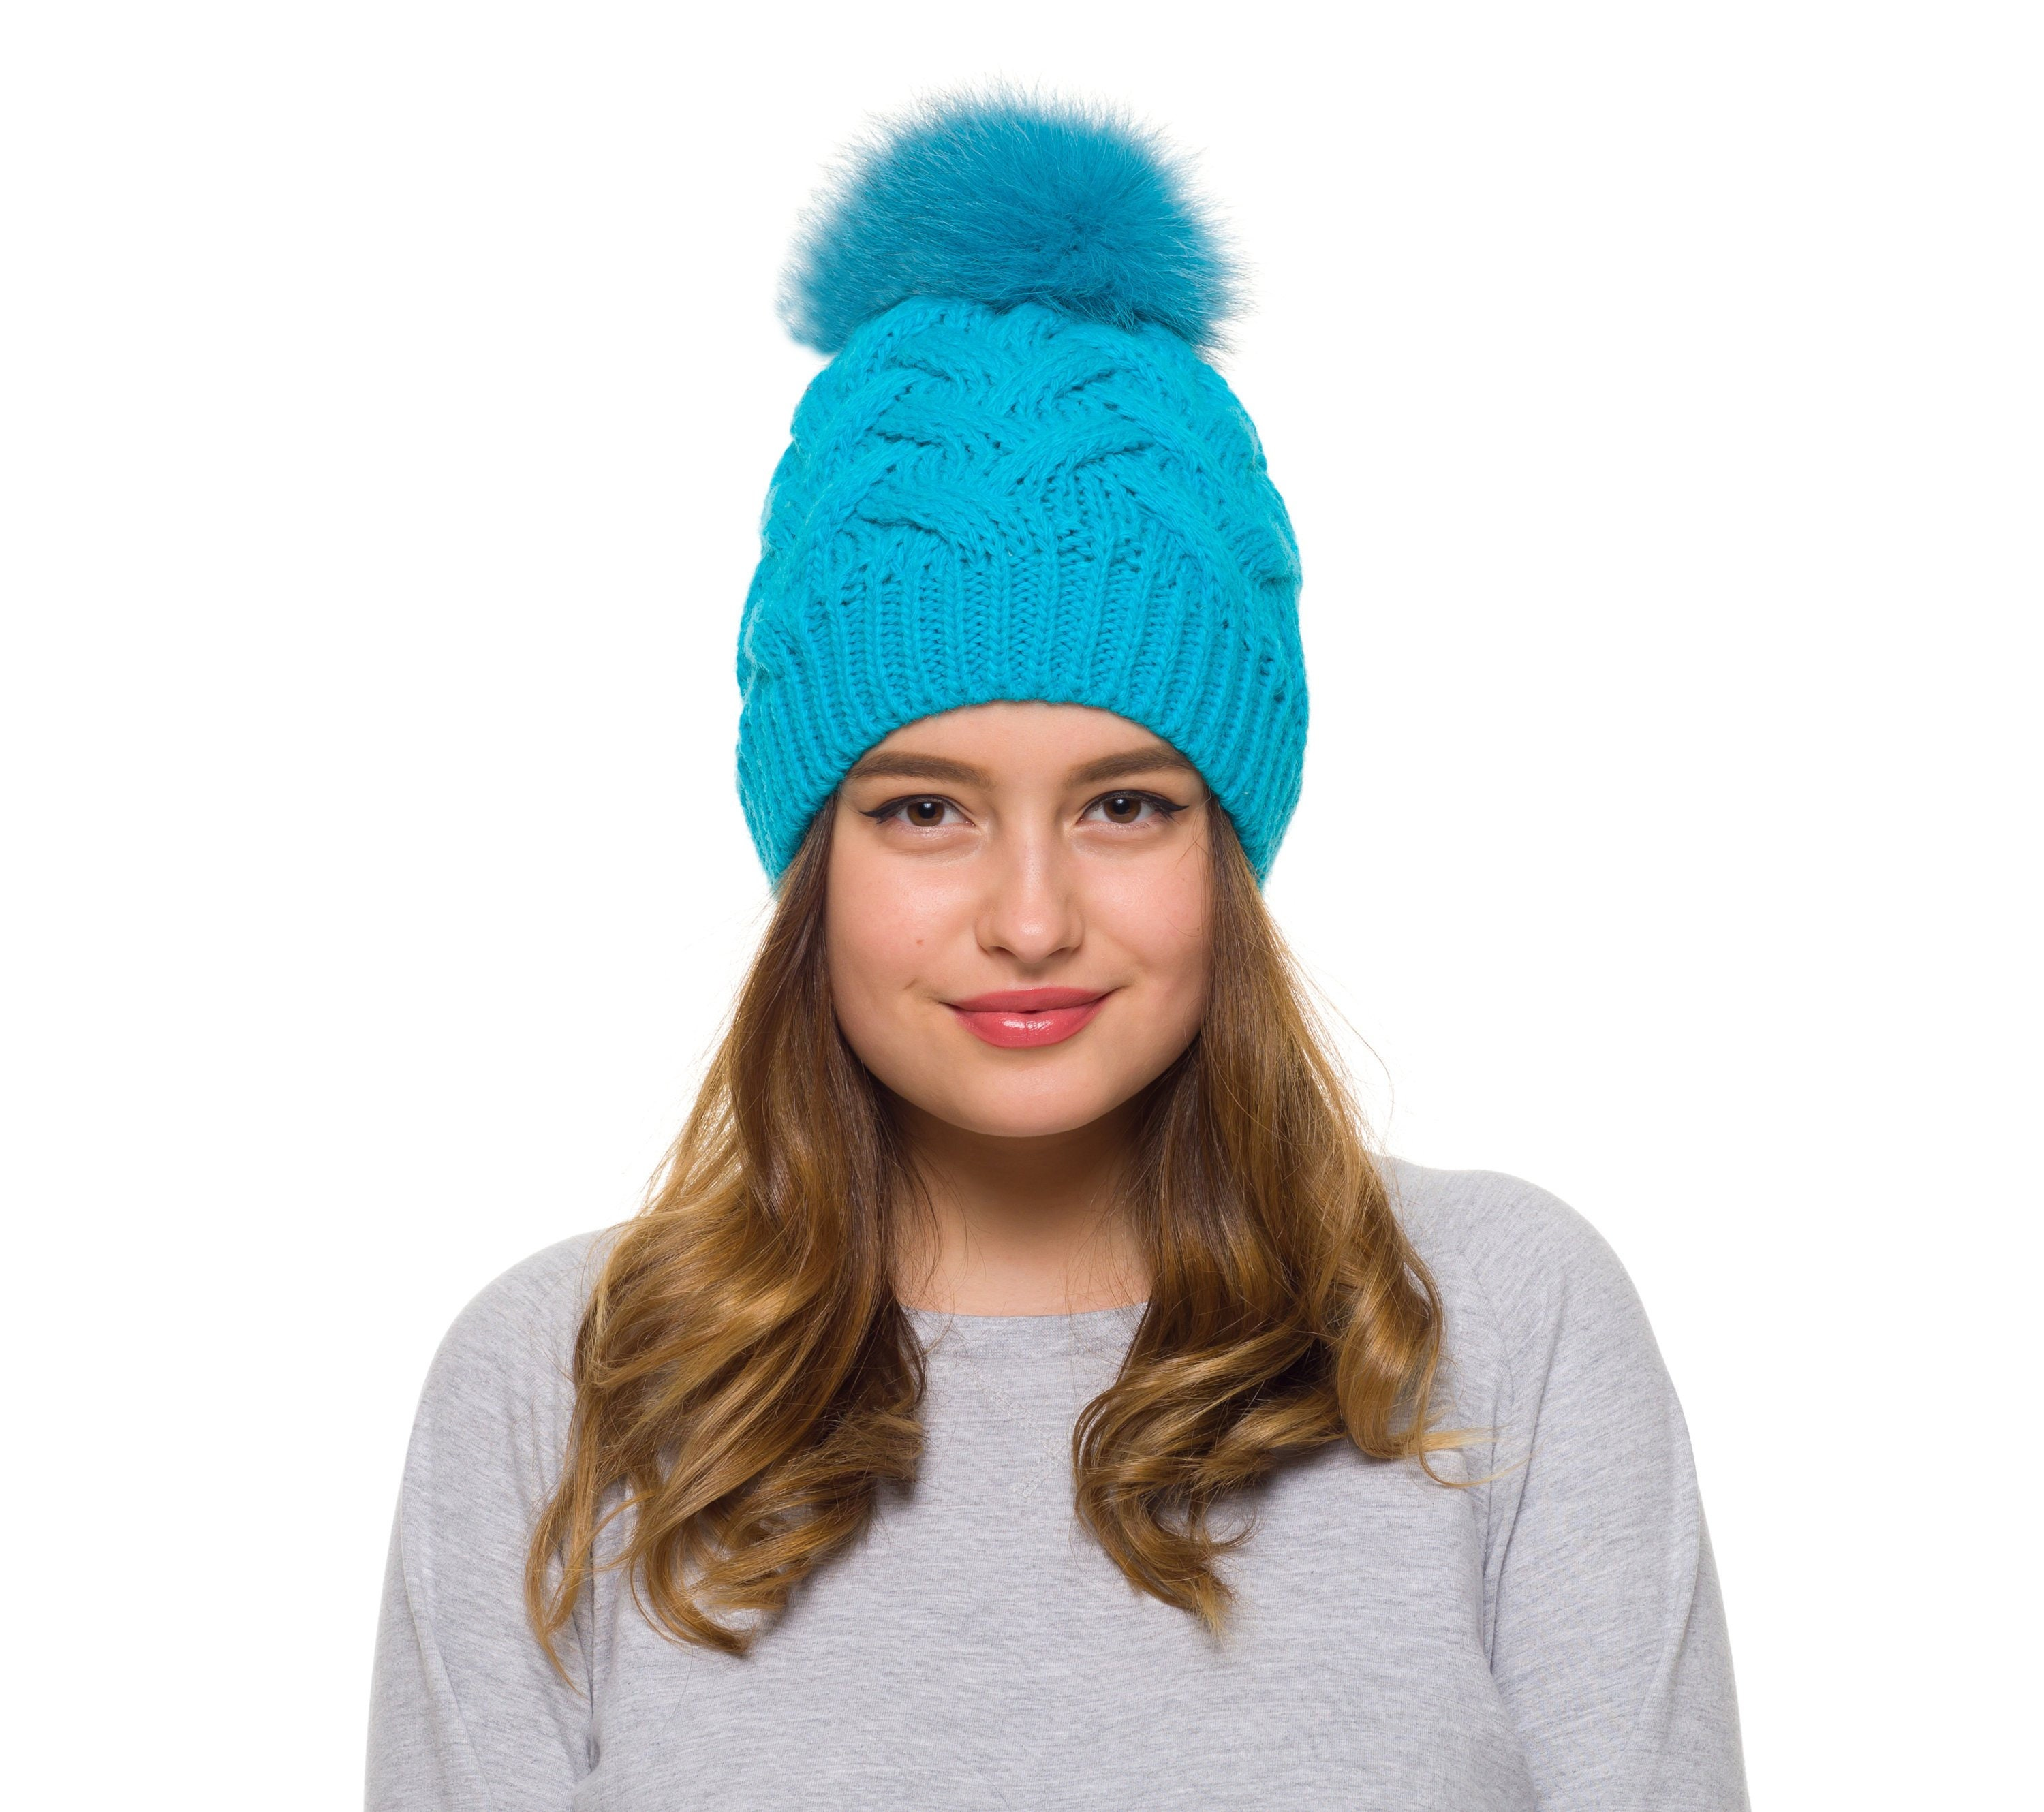 Winter hat Large Pom Pom hat Fleece lined hat Pompom  61b0eee3ae7f